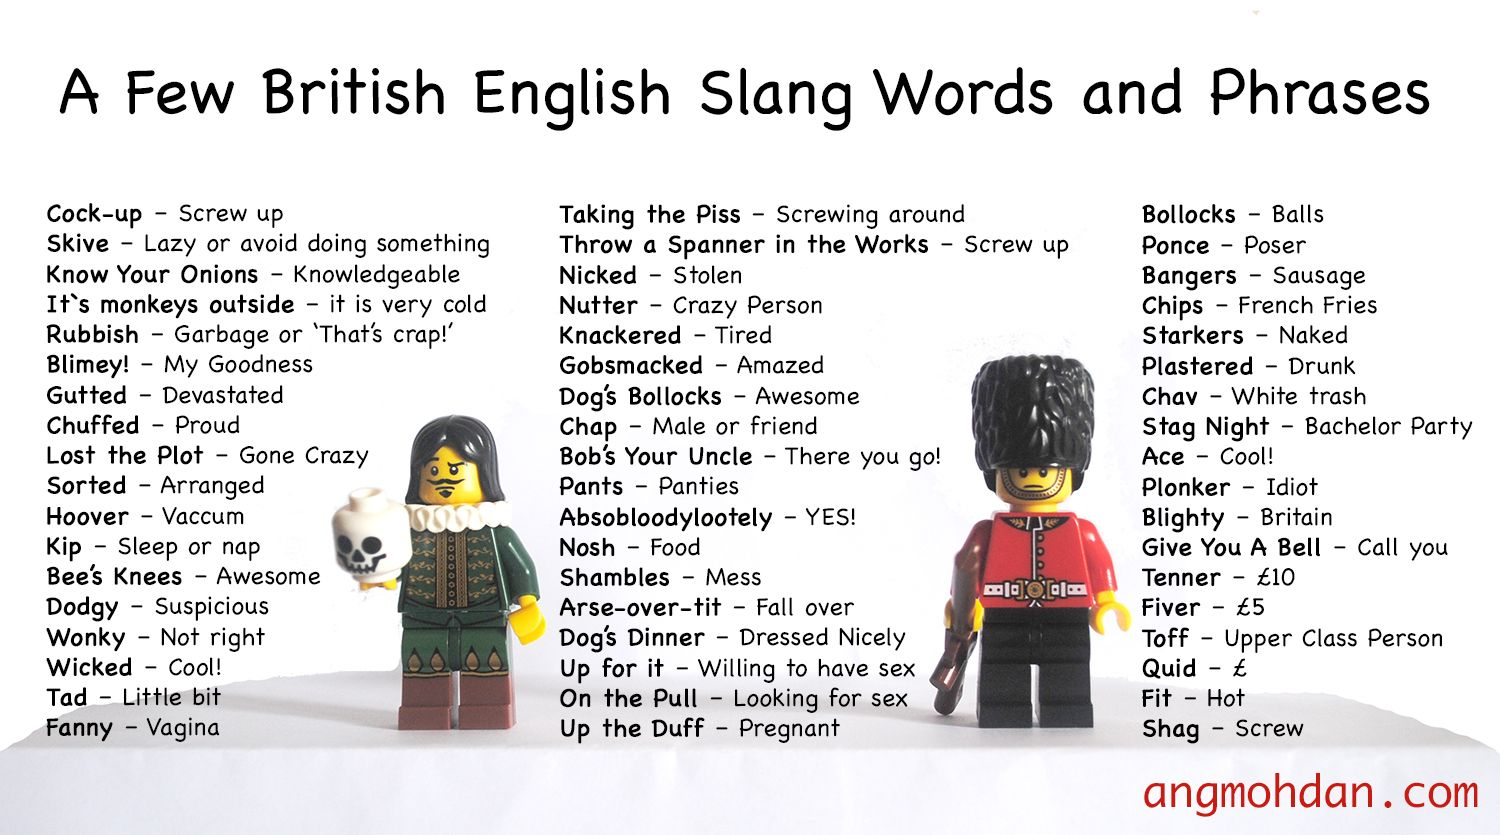 What the British Say, Versus What They Mean angmohdan